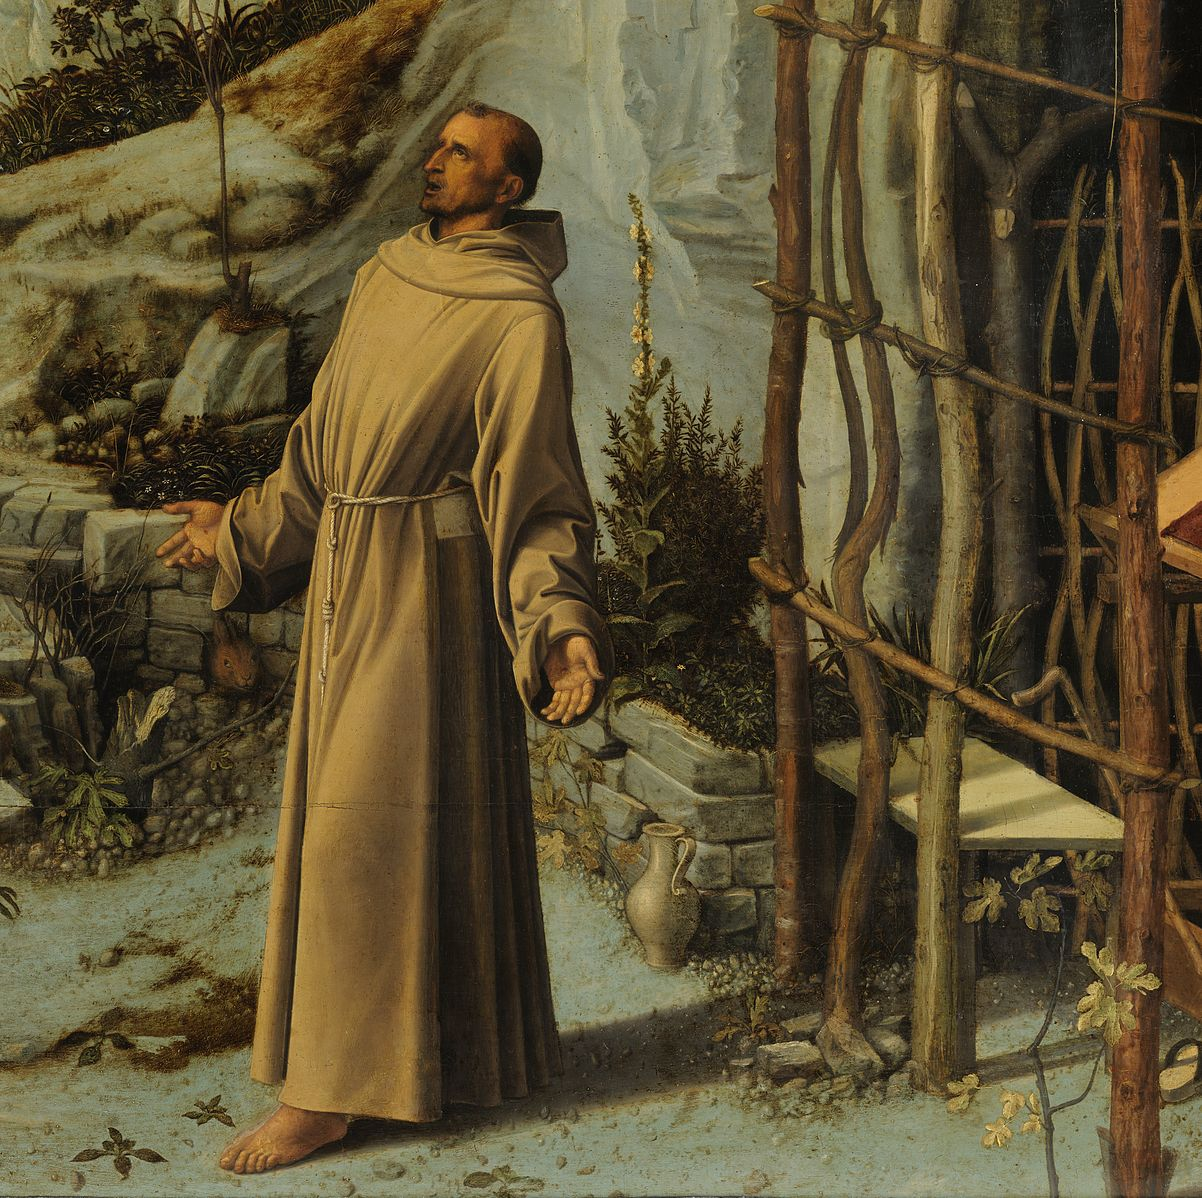 Giovanni bellini   saint francis in the desert   google art project x1 y1